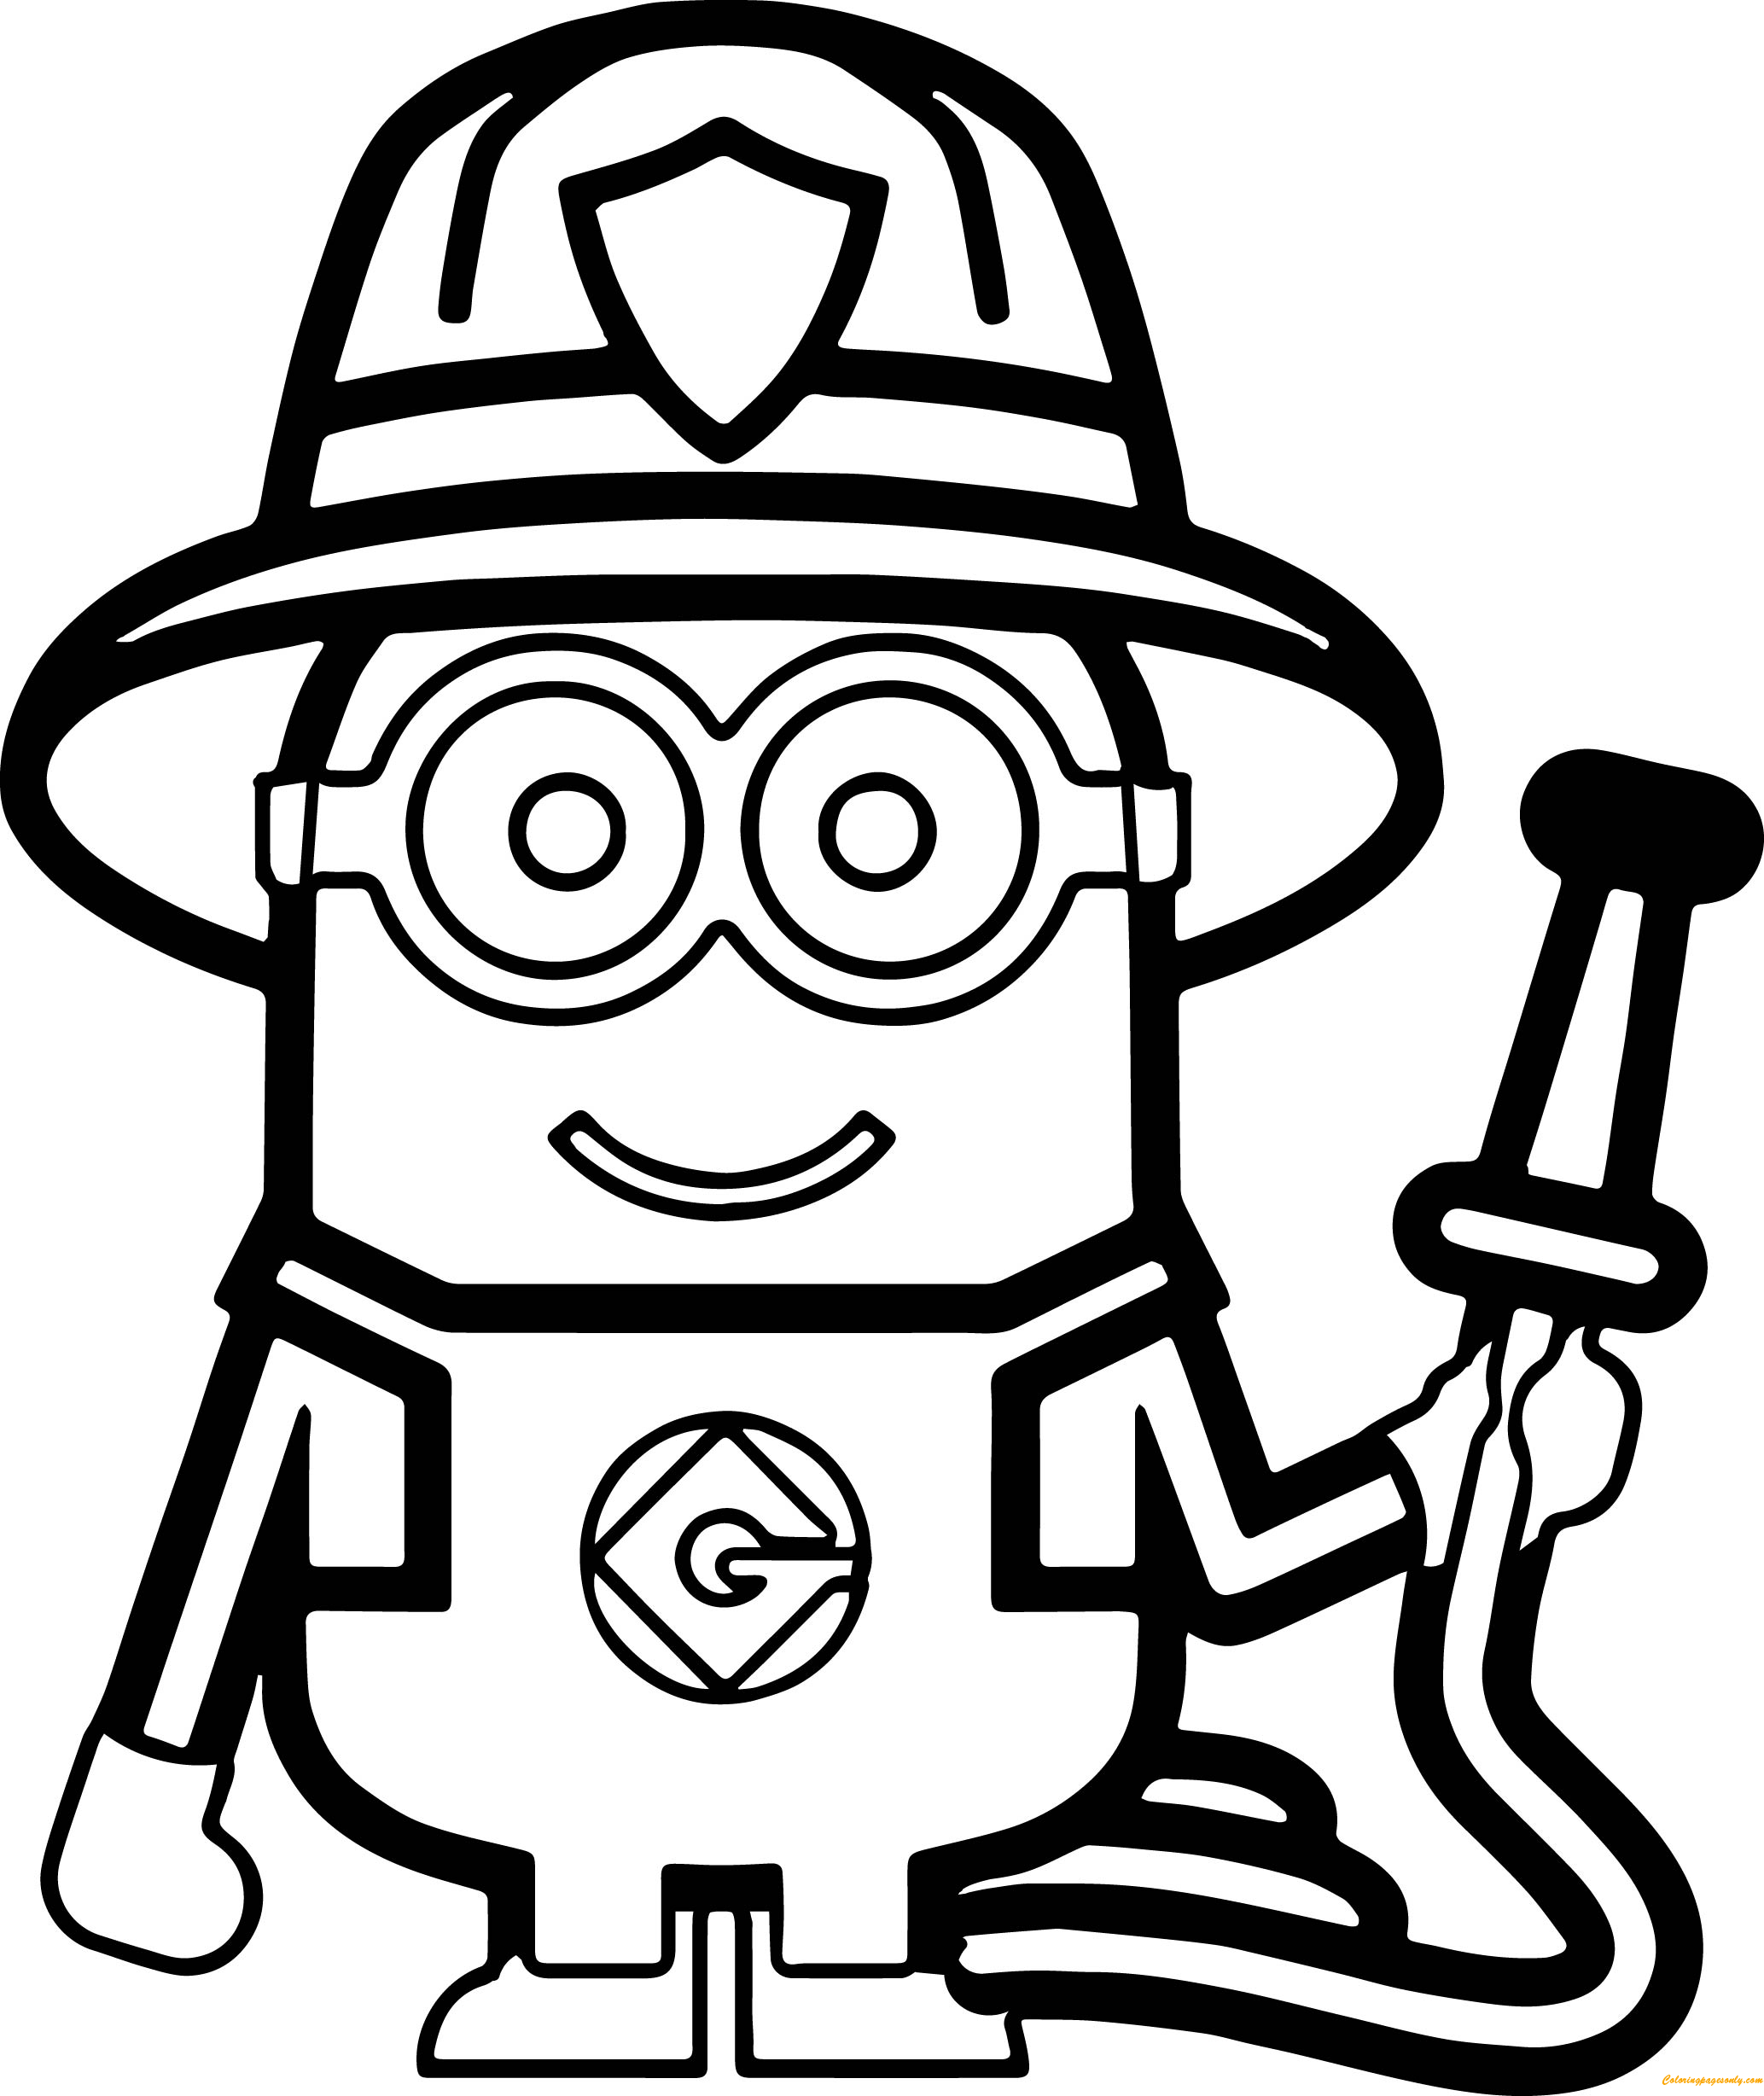 Minions Fireman Coloring Pages Cartoons Coloring Pages Free Printable Coloring Pages Online